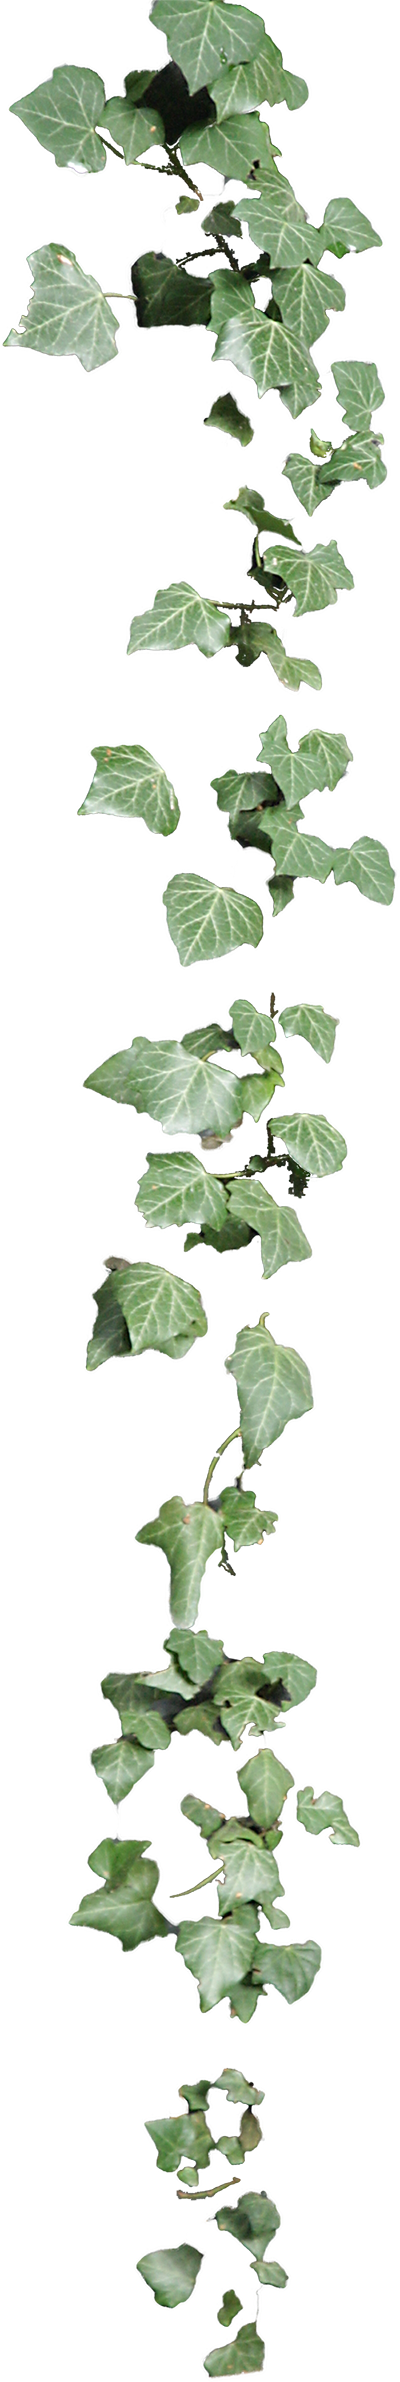 Vines clipart english ivy. Cirrus by lilifilane deviantart